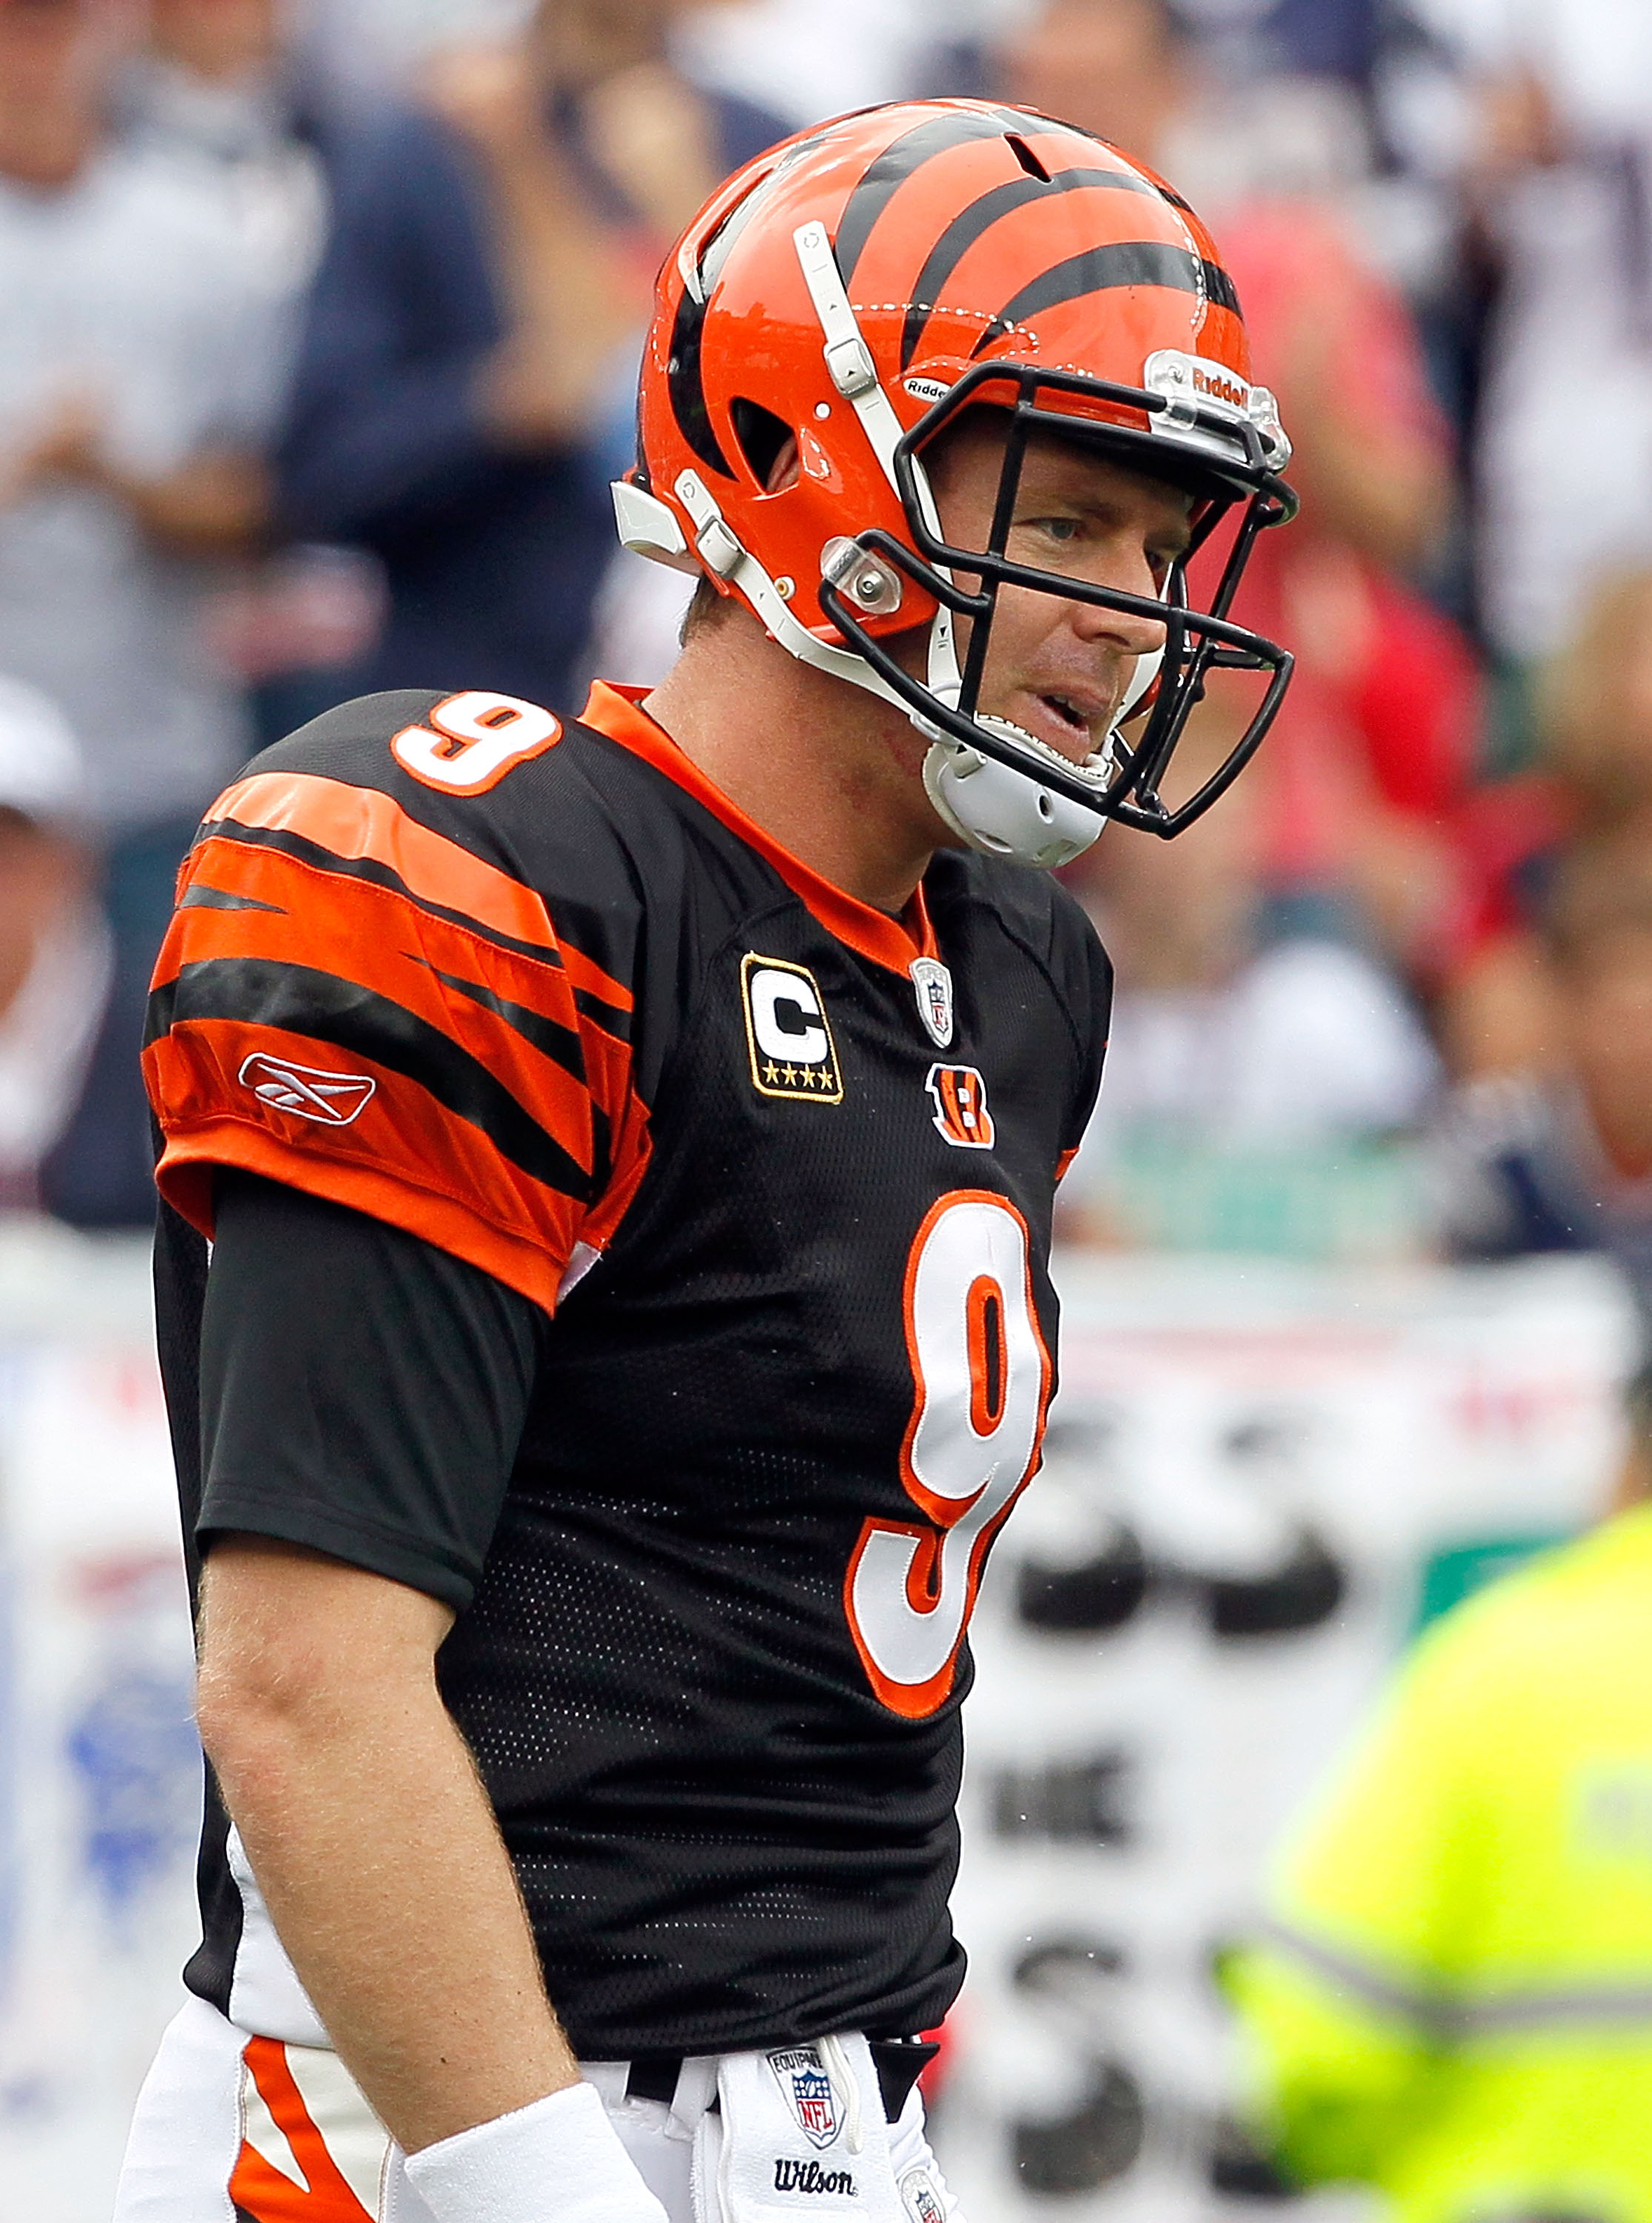 FOXBORO, MA - SEPTEMBER 12: Quarterback Carson Palmer #9 of the Cincinnati Bengals reacts during the NFL season opener against the New England Patriots  at Gillette Stadium on September 12, 2010 in Foxboro, Massachusetts. (Photo by Jim Rogash/Getty Images